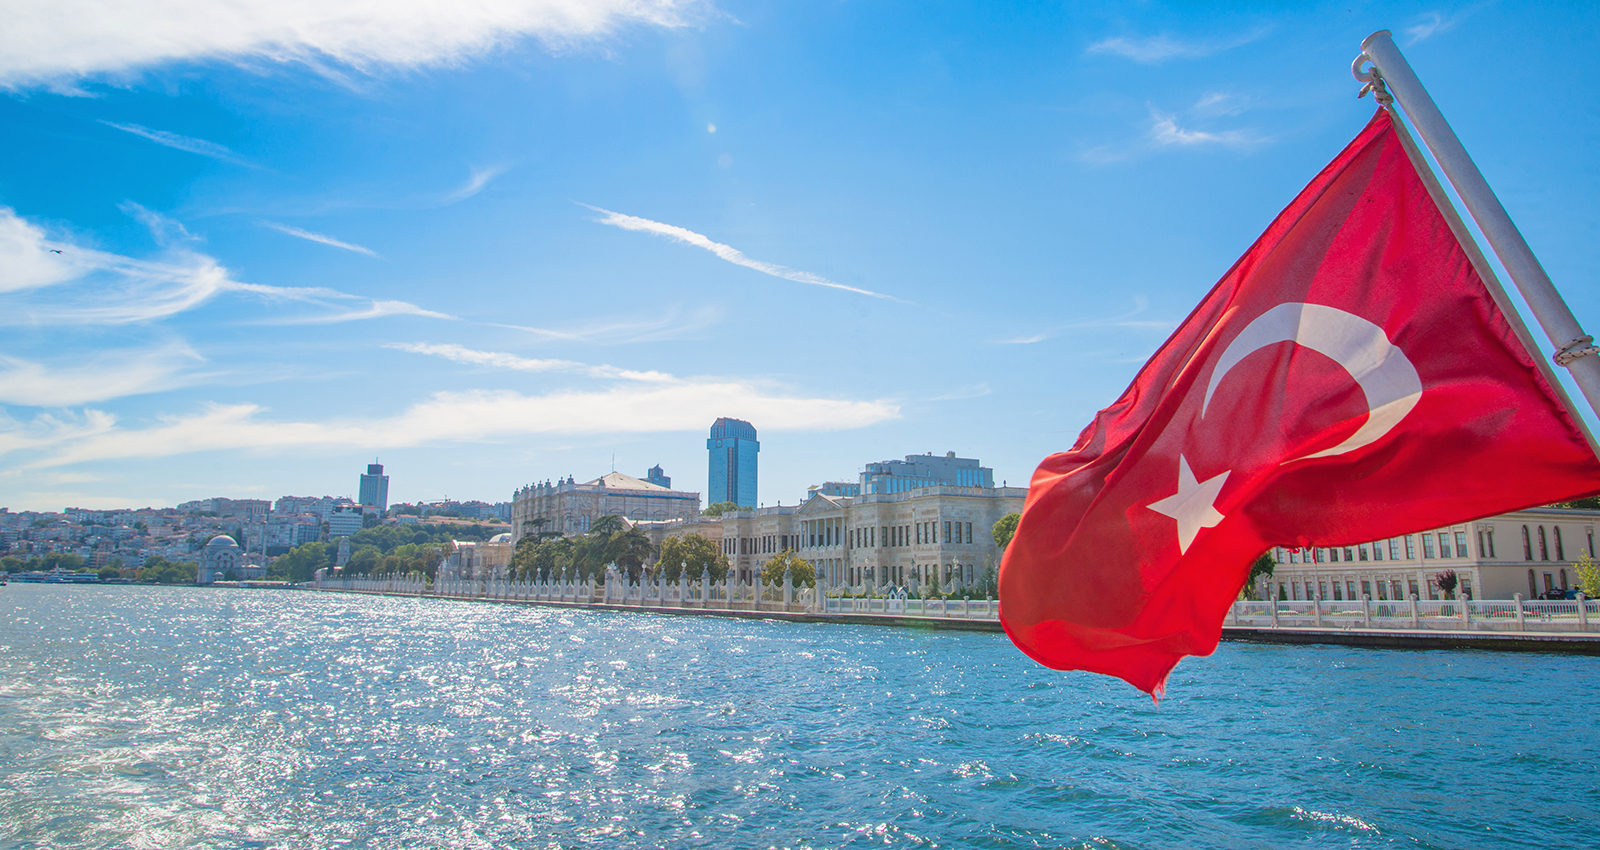 Turkish passport allows visa-free access to 110+ countries in the world including Singapore and Hong Kong